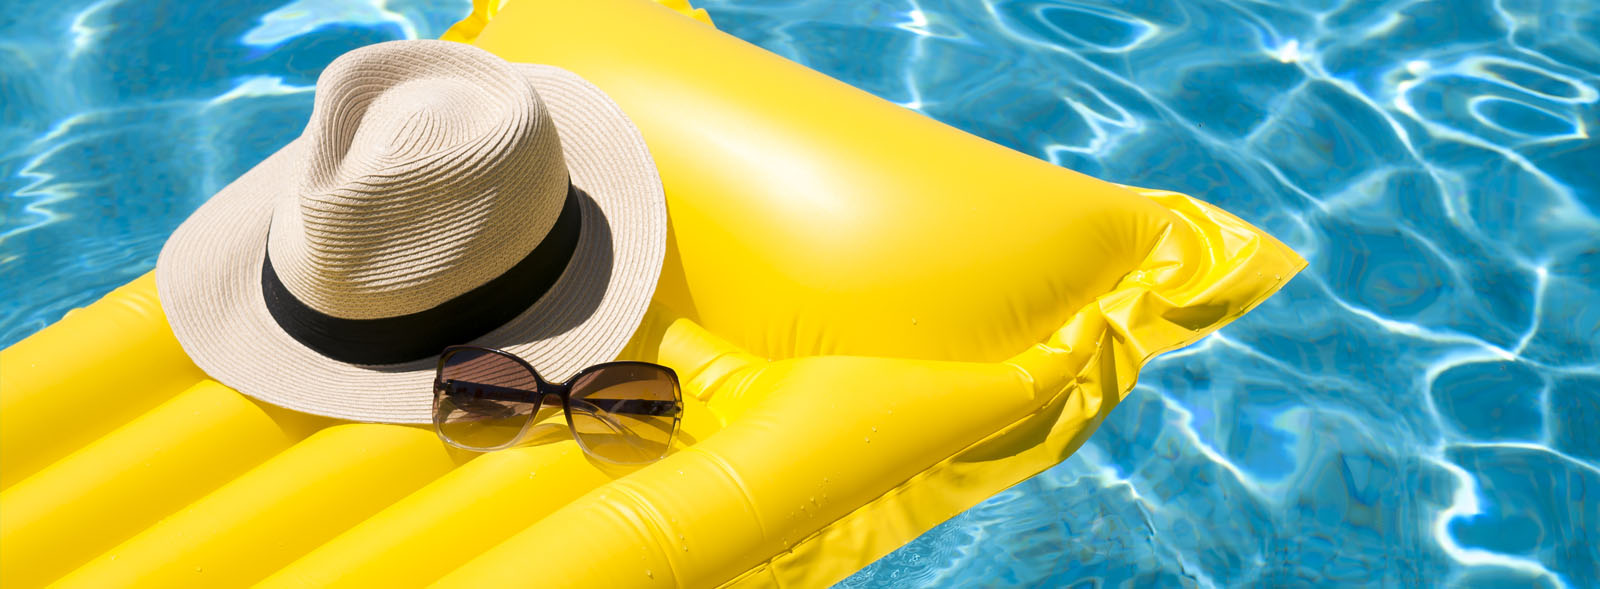 swimming pool maintenance services in the southern suburbs and atlantic seaboard seapoint cape town